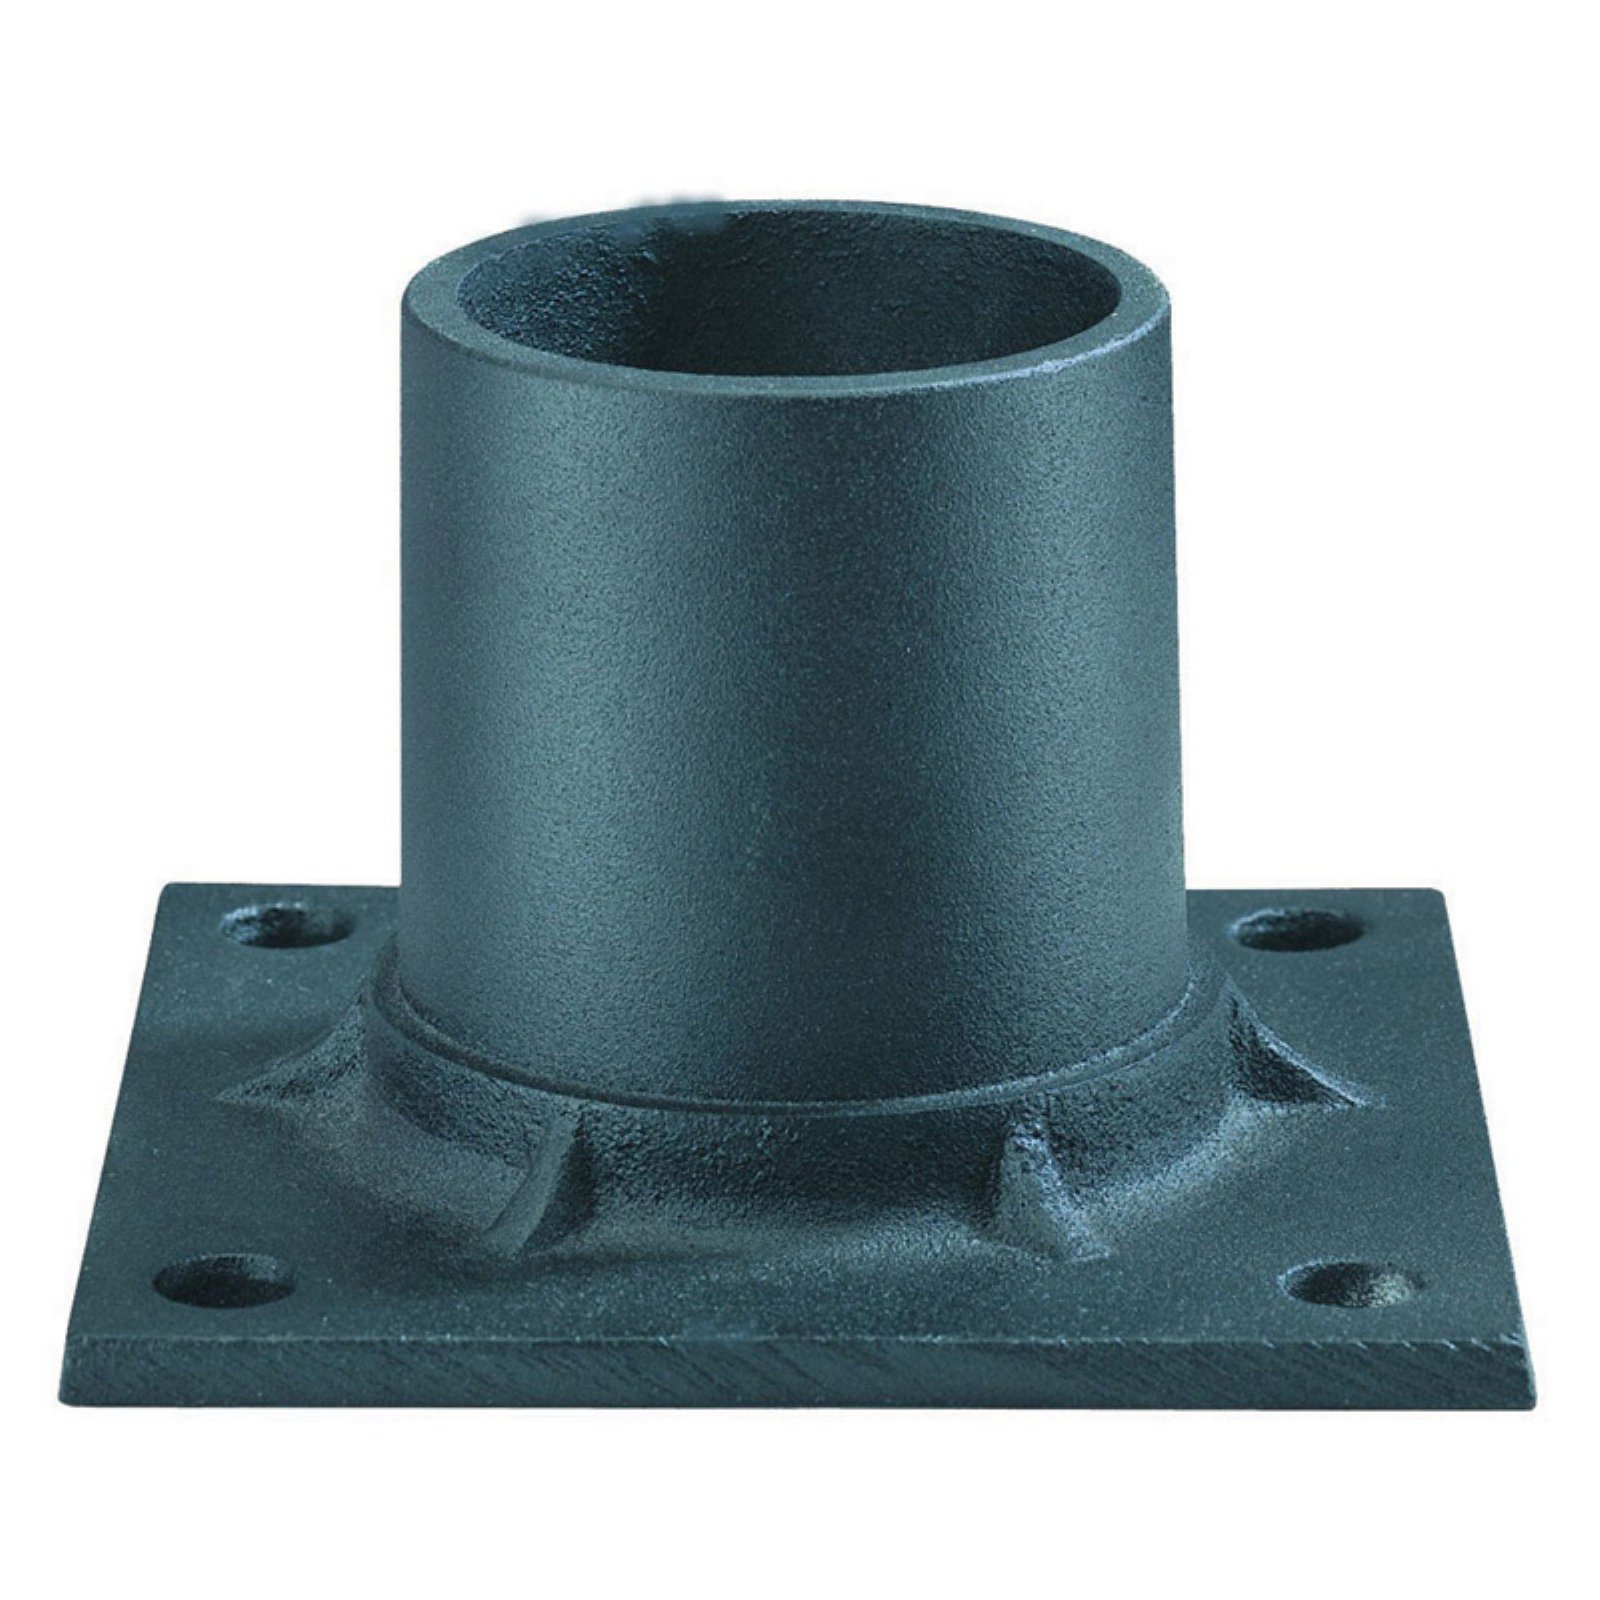 Acclaim Lighting Lamp Post Accessories Pier Mount Adapter